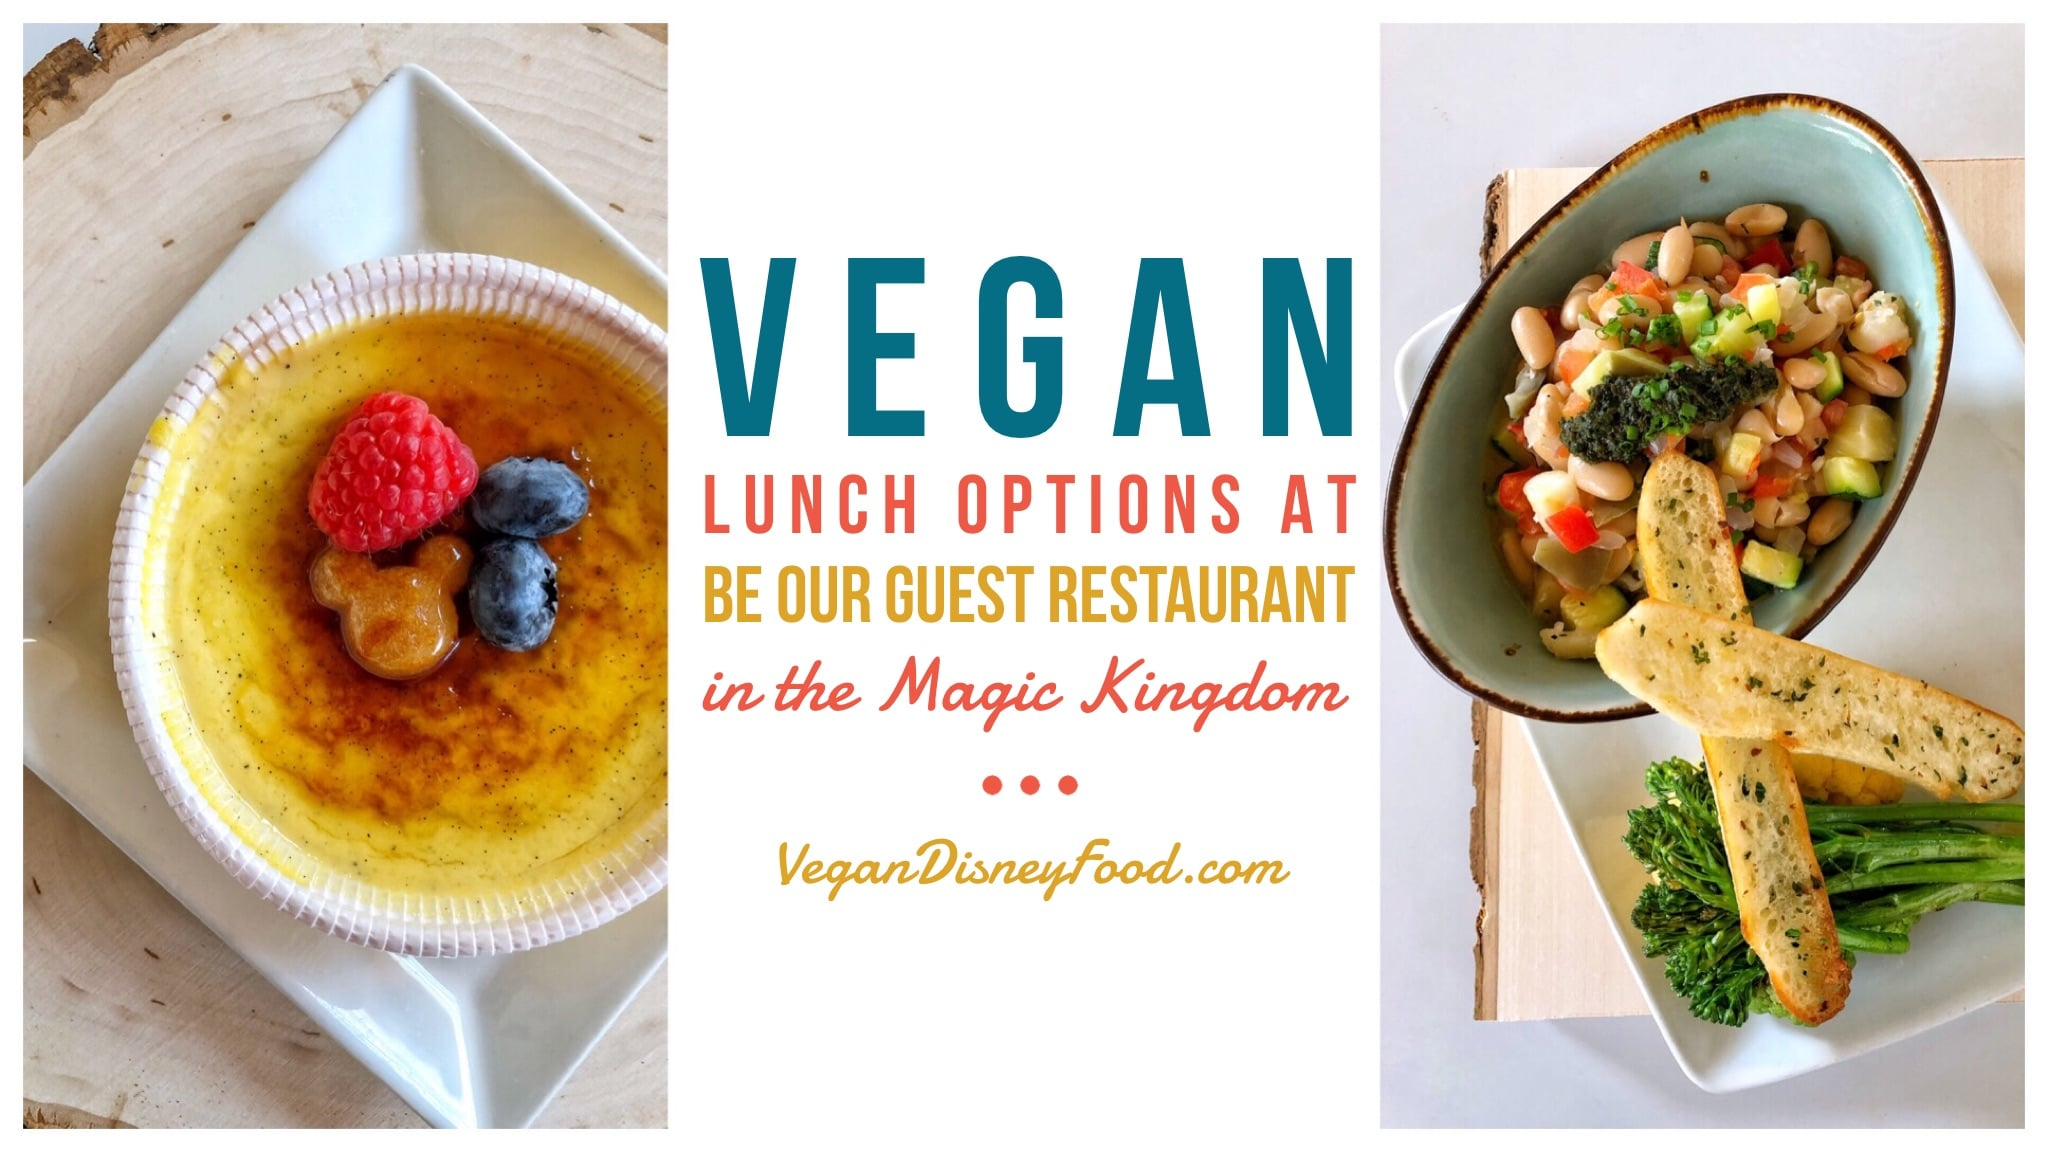 Vegan Lunch Options at Be Our Guest Restaurant in the Magic Kingdom at Walt Disney World